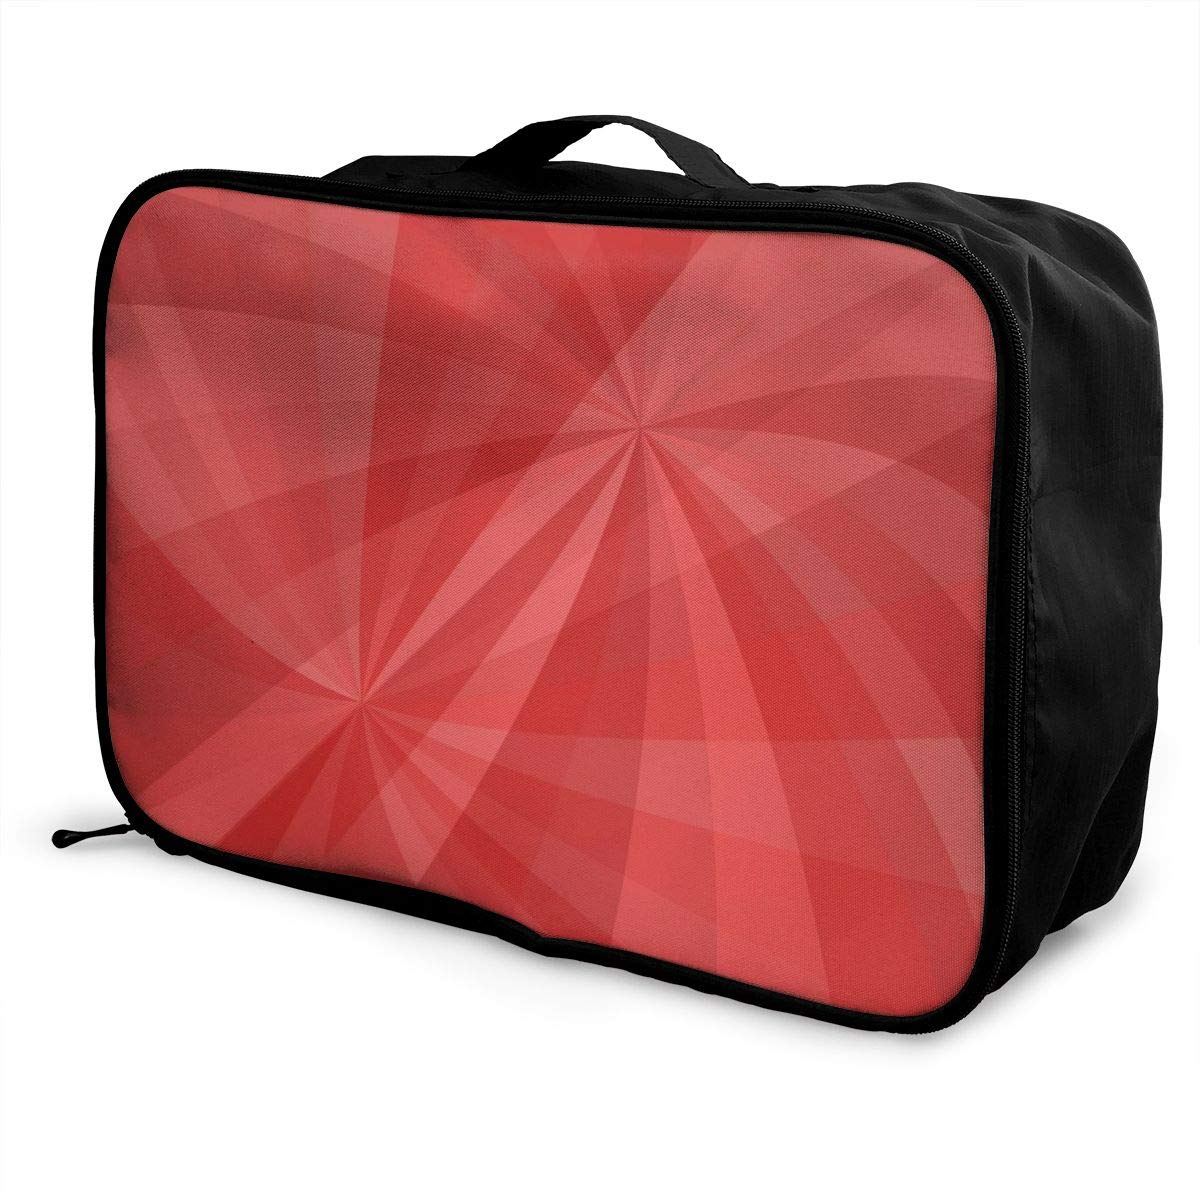 Irregular Polygon Abstract Texture Travel Lightweight Waterproof Foldable Storage Carry Luggage Large Capacity Portable Luggage Bag Duffel Bag